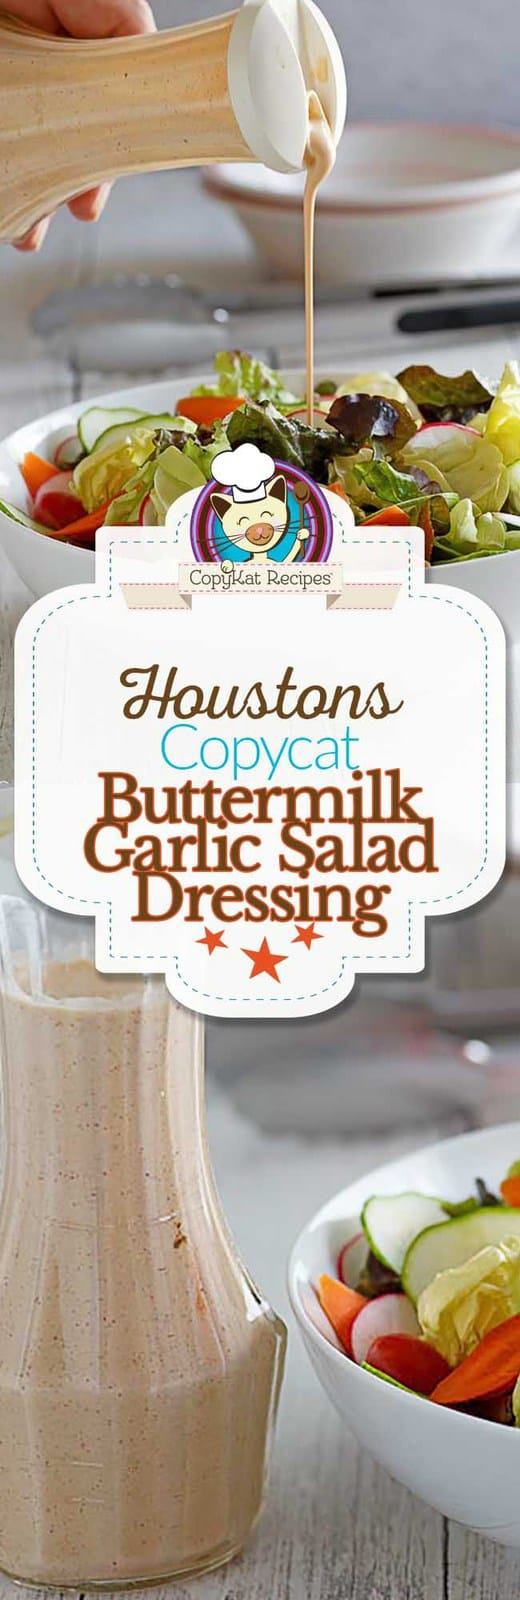 Recreate Houston's Buttermilk Garlic Salad Dressing at home with this copycat recipe. #copycat #salad #saladdressing #Houstons